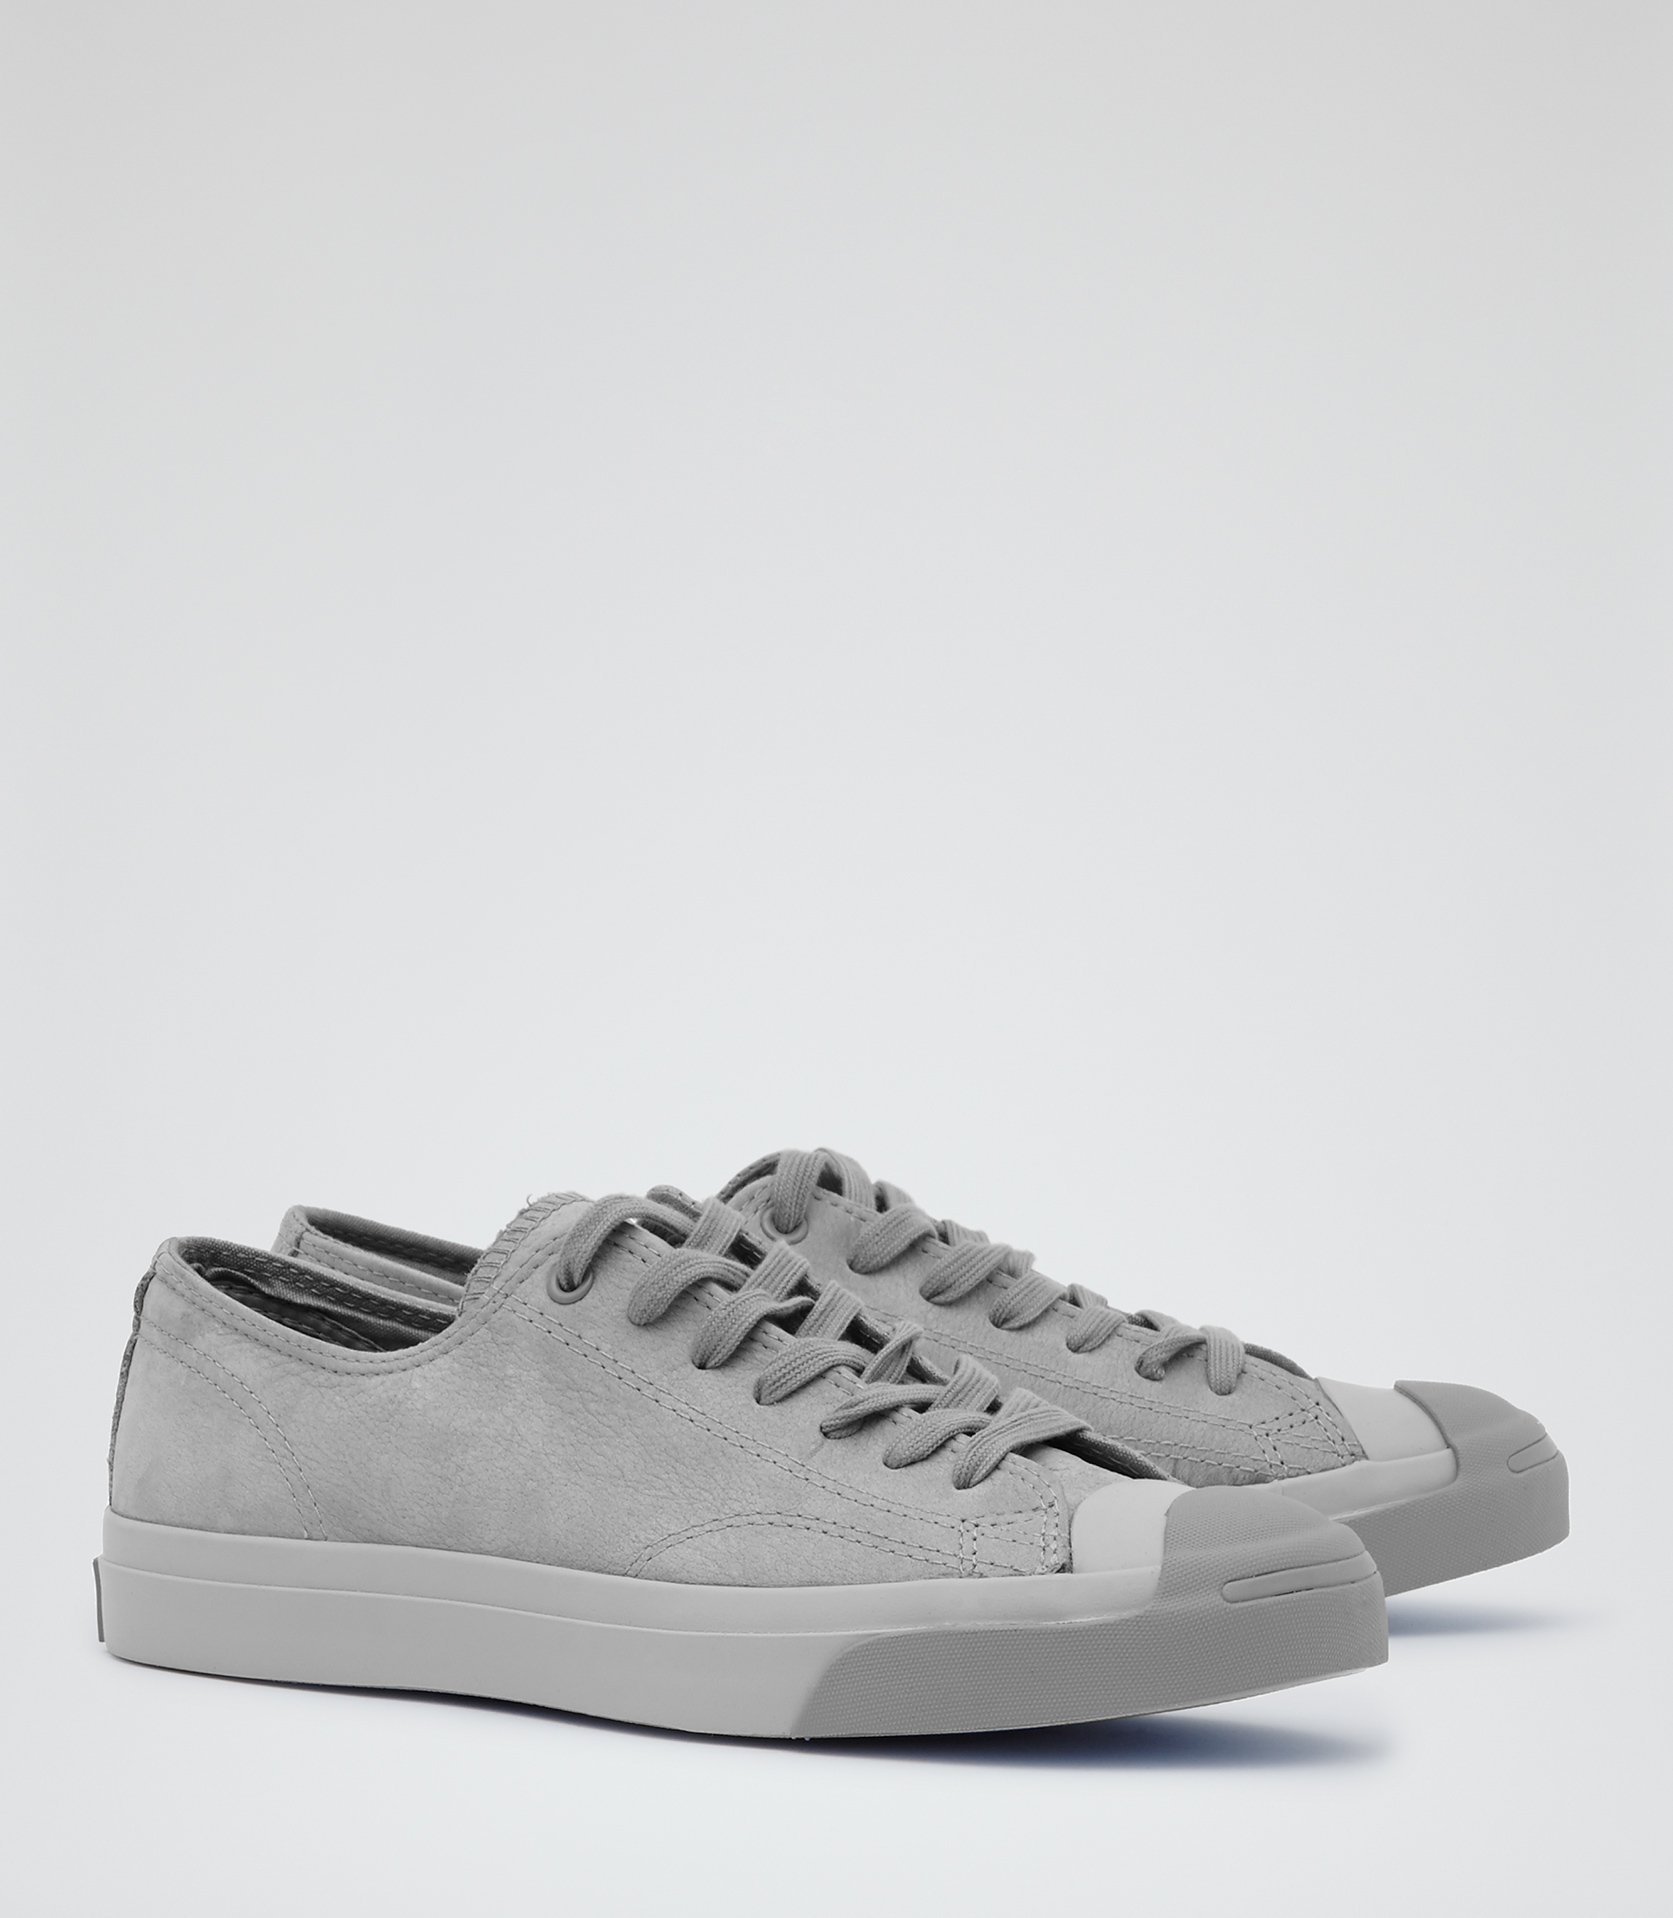 d54540b77c99c3 Reiss Jack Purcell Jack Purcell Trainers in Gray for Men - Lyst